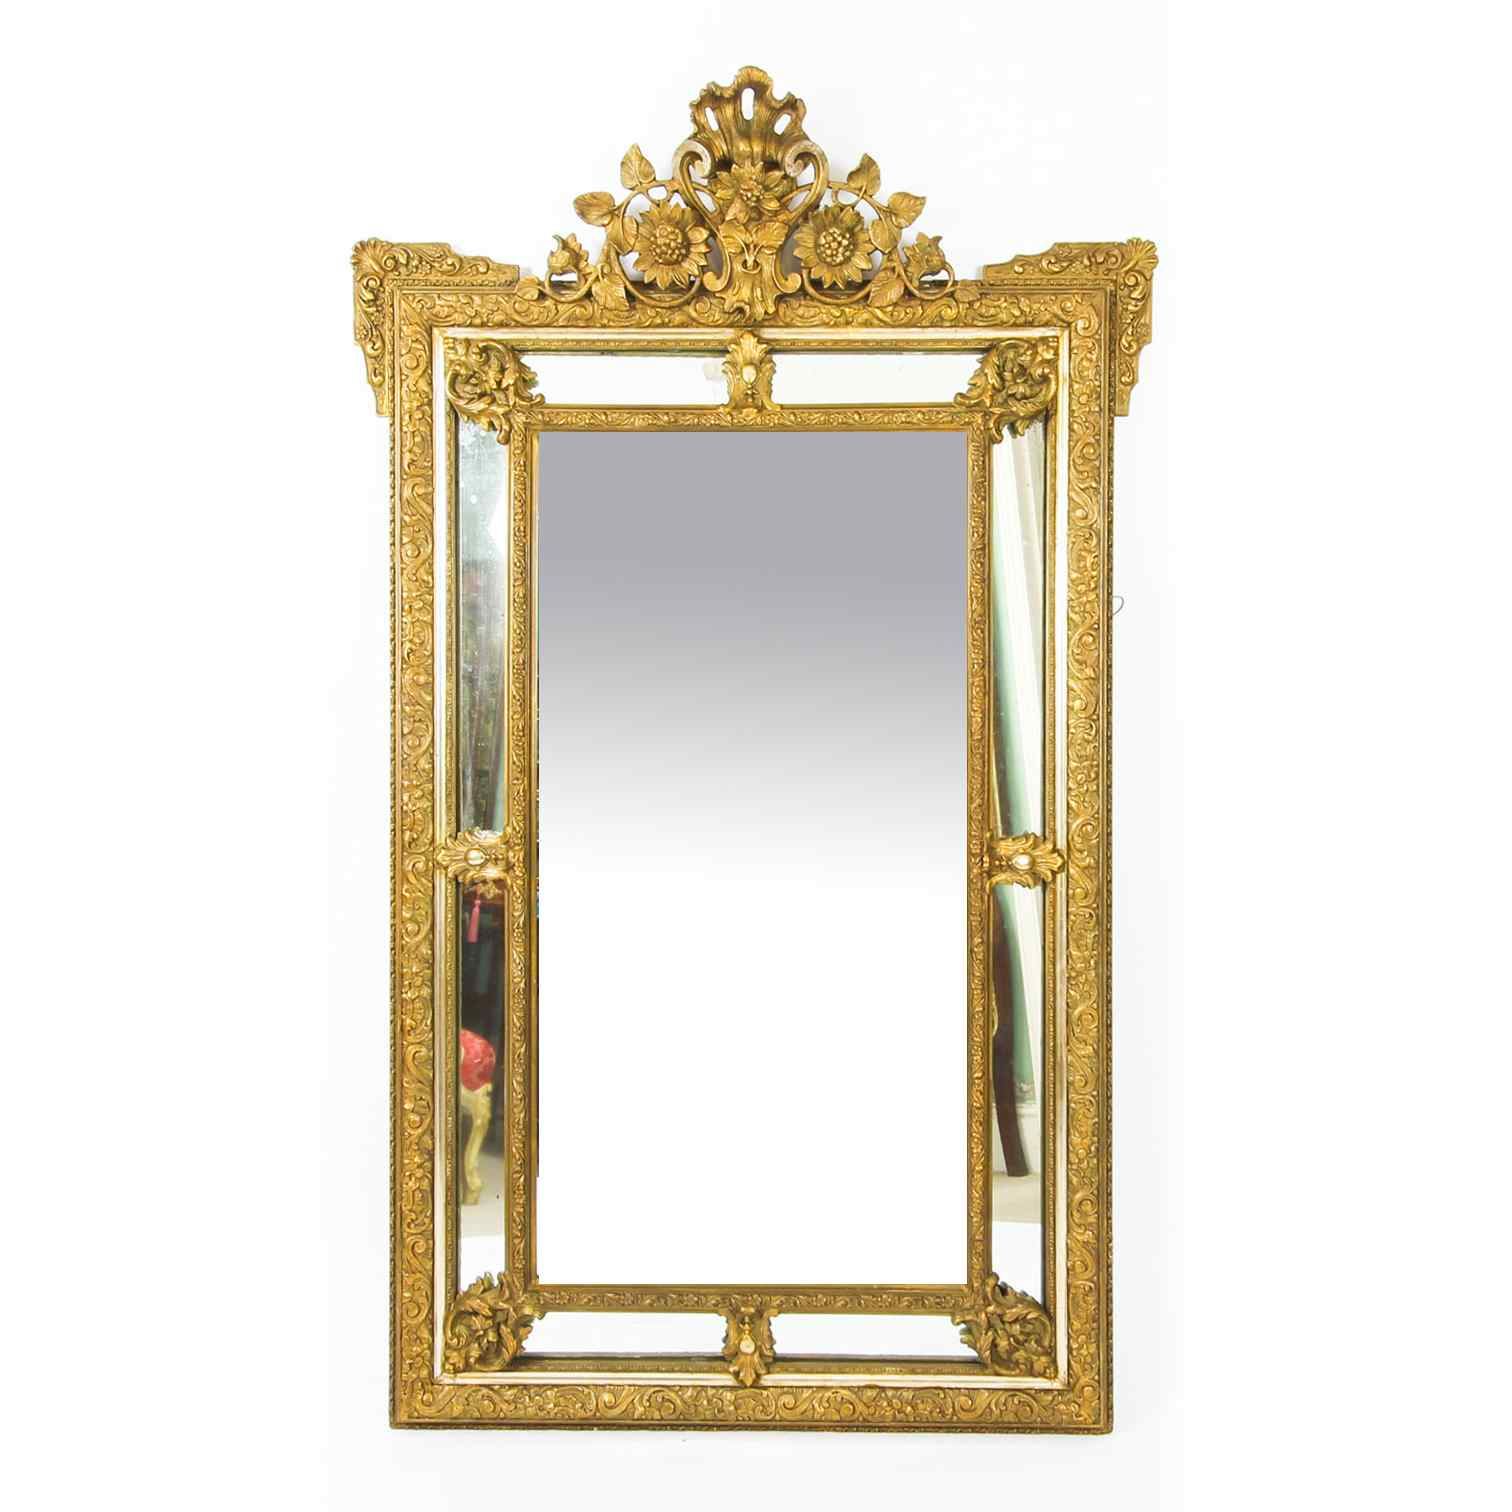 Antique French Giltwood Overmantel Louis Revival Mirror